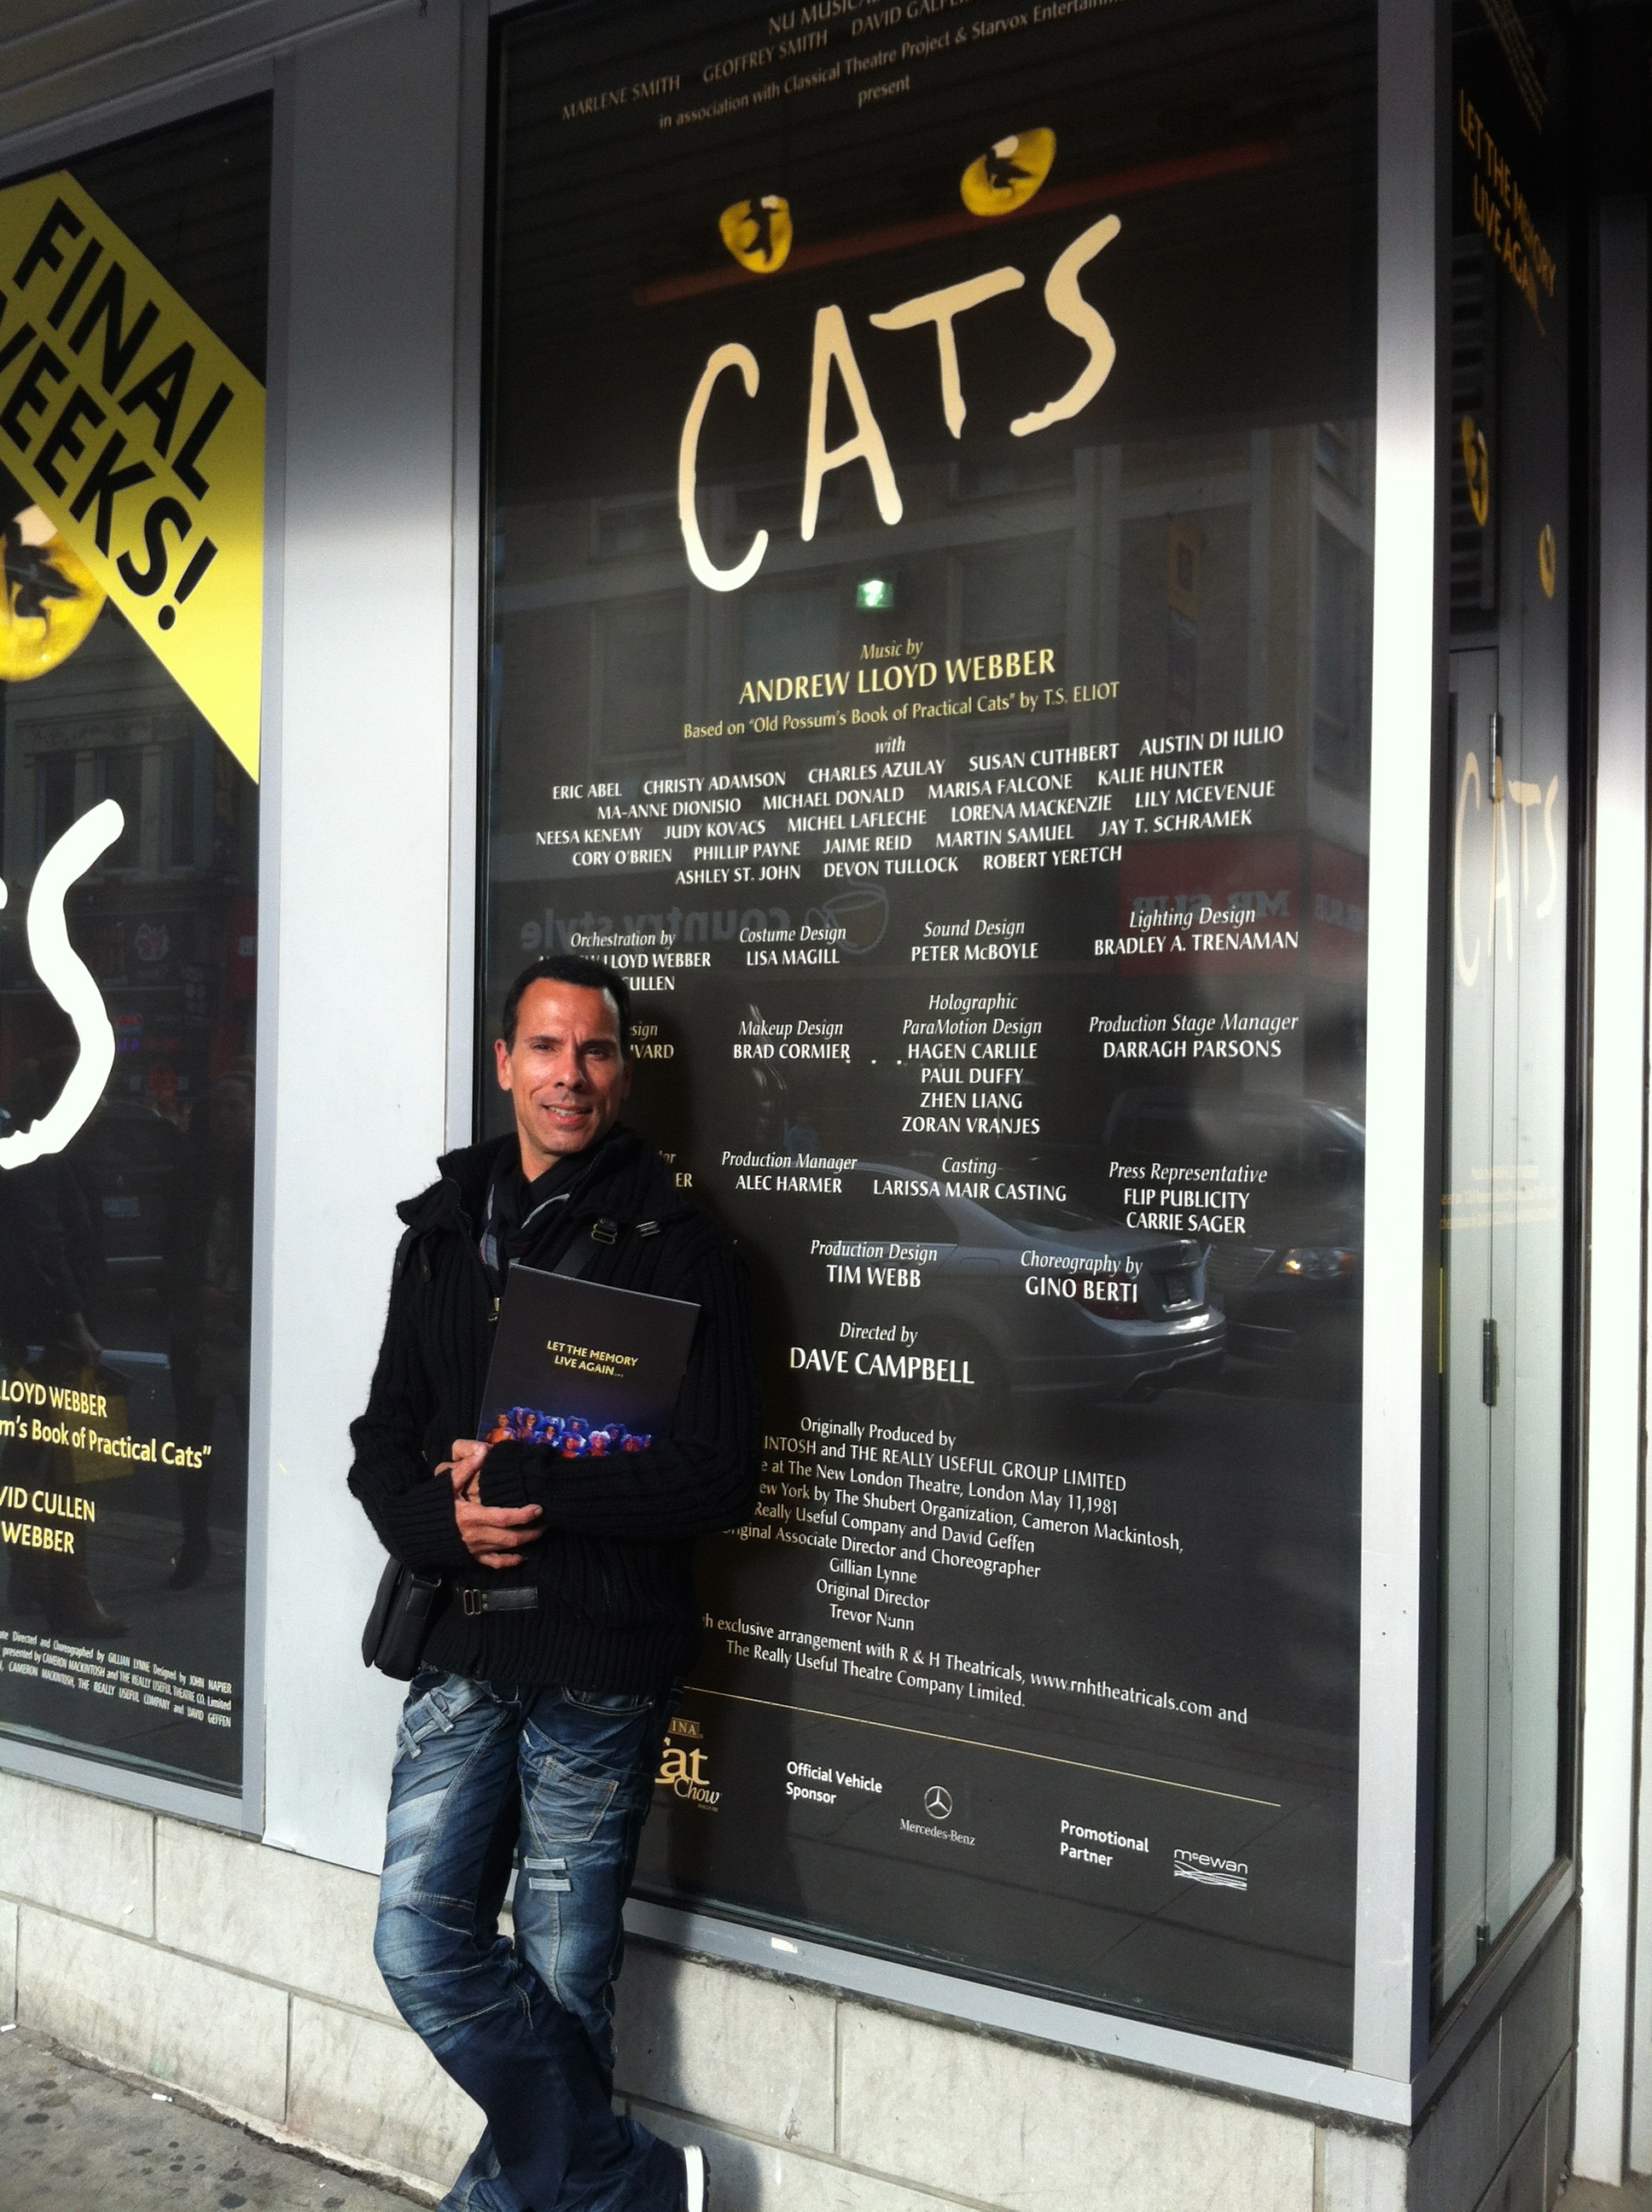 Canadian Revival of Cats, at the Panasonic Theatre